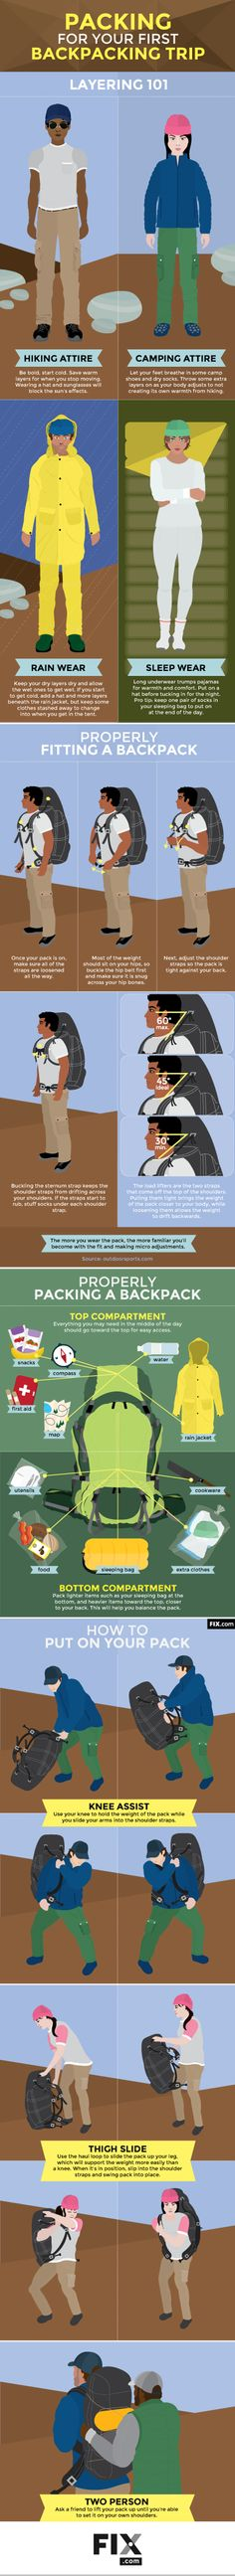 It's important to pack your crucial backpacking items where you can easily access them, while still keeping your pack balanced. Read on for tips on packing a backpack!